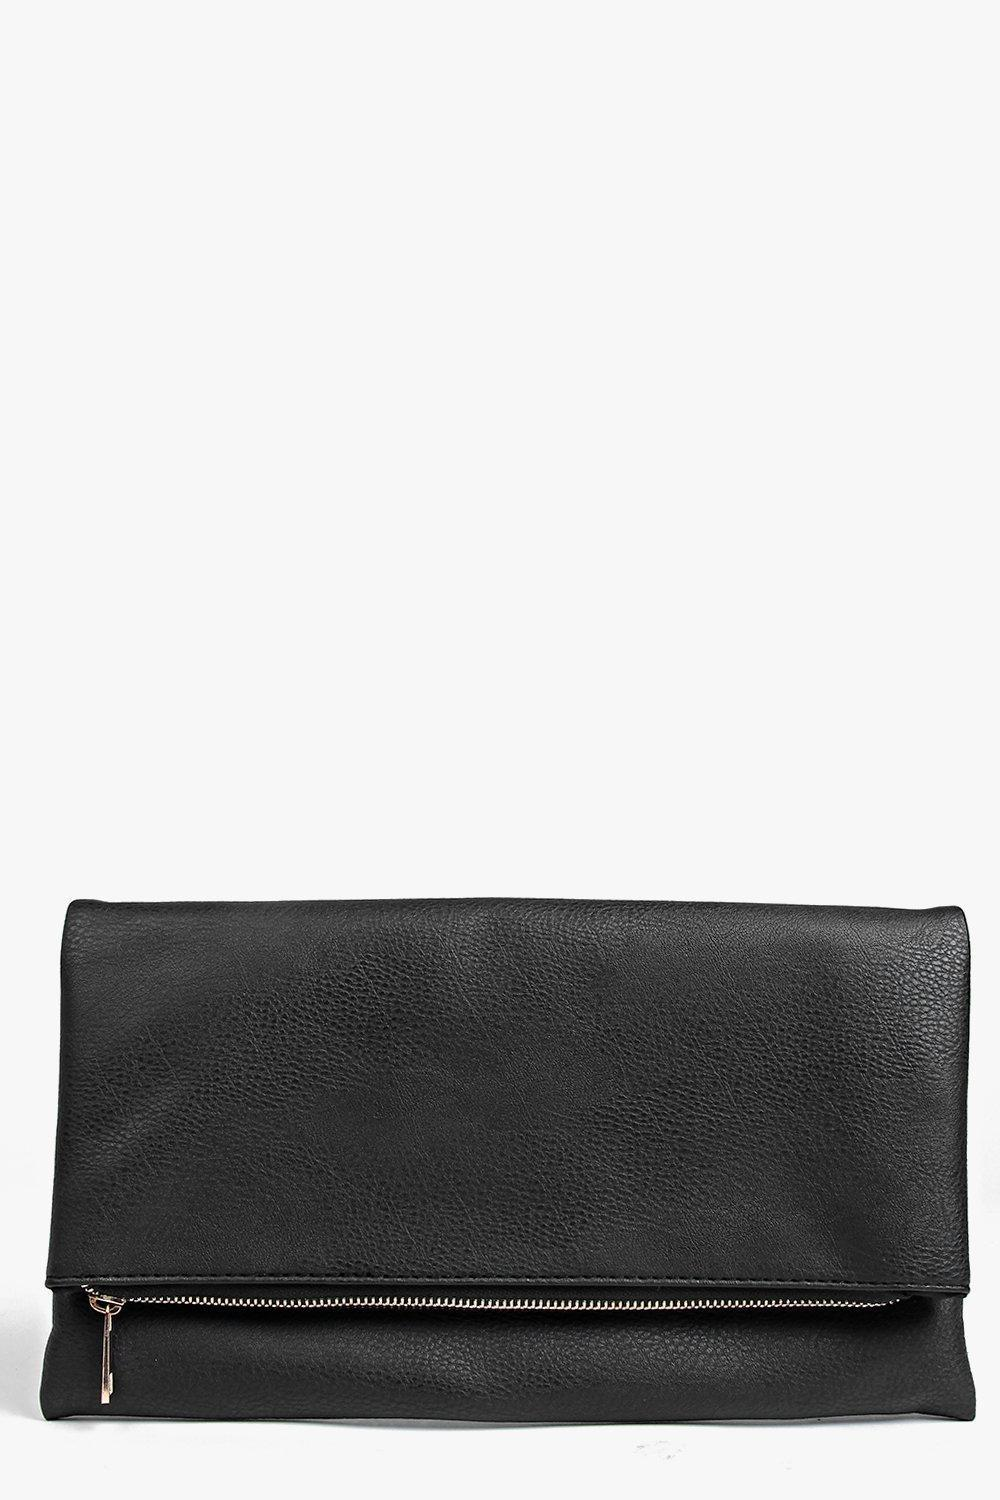 Fold Over Clutch Bag Black - predominant colour: black; occasions: evening, occasion; type of pattern: standard; style: clutch; length: hand carry; size: standard; material: faux leather; pattern: plain; finish: plain; season: s/s 2016; wardrobe: event